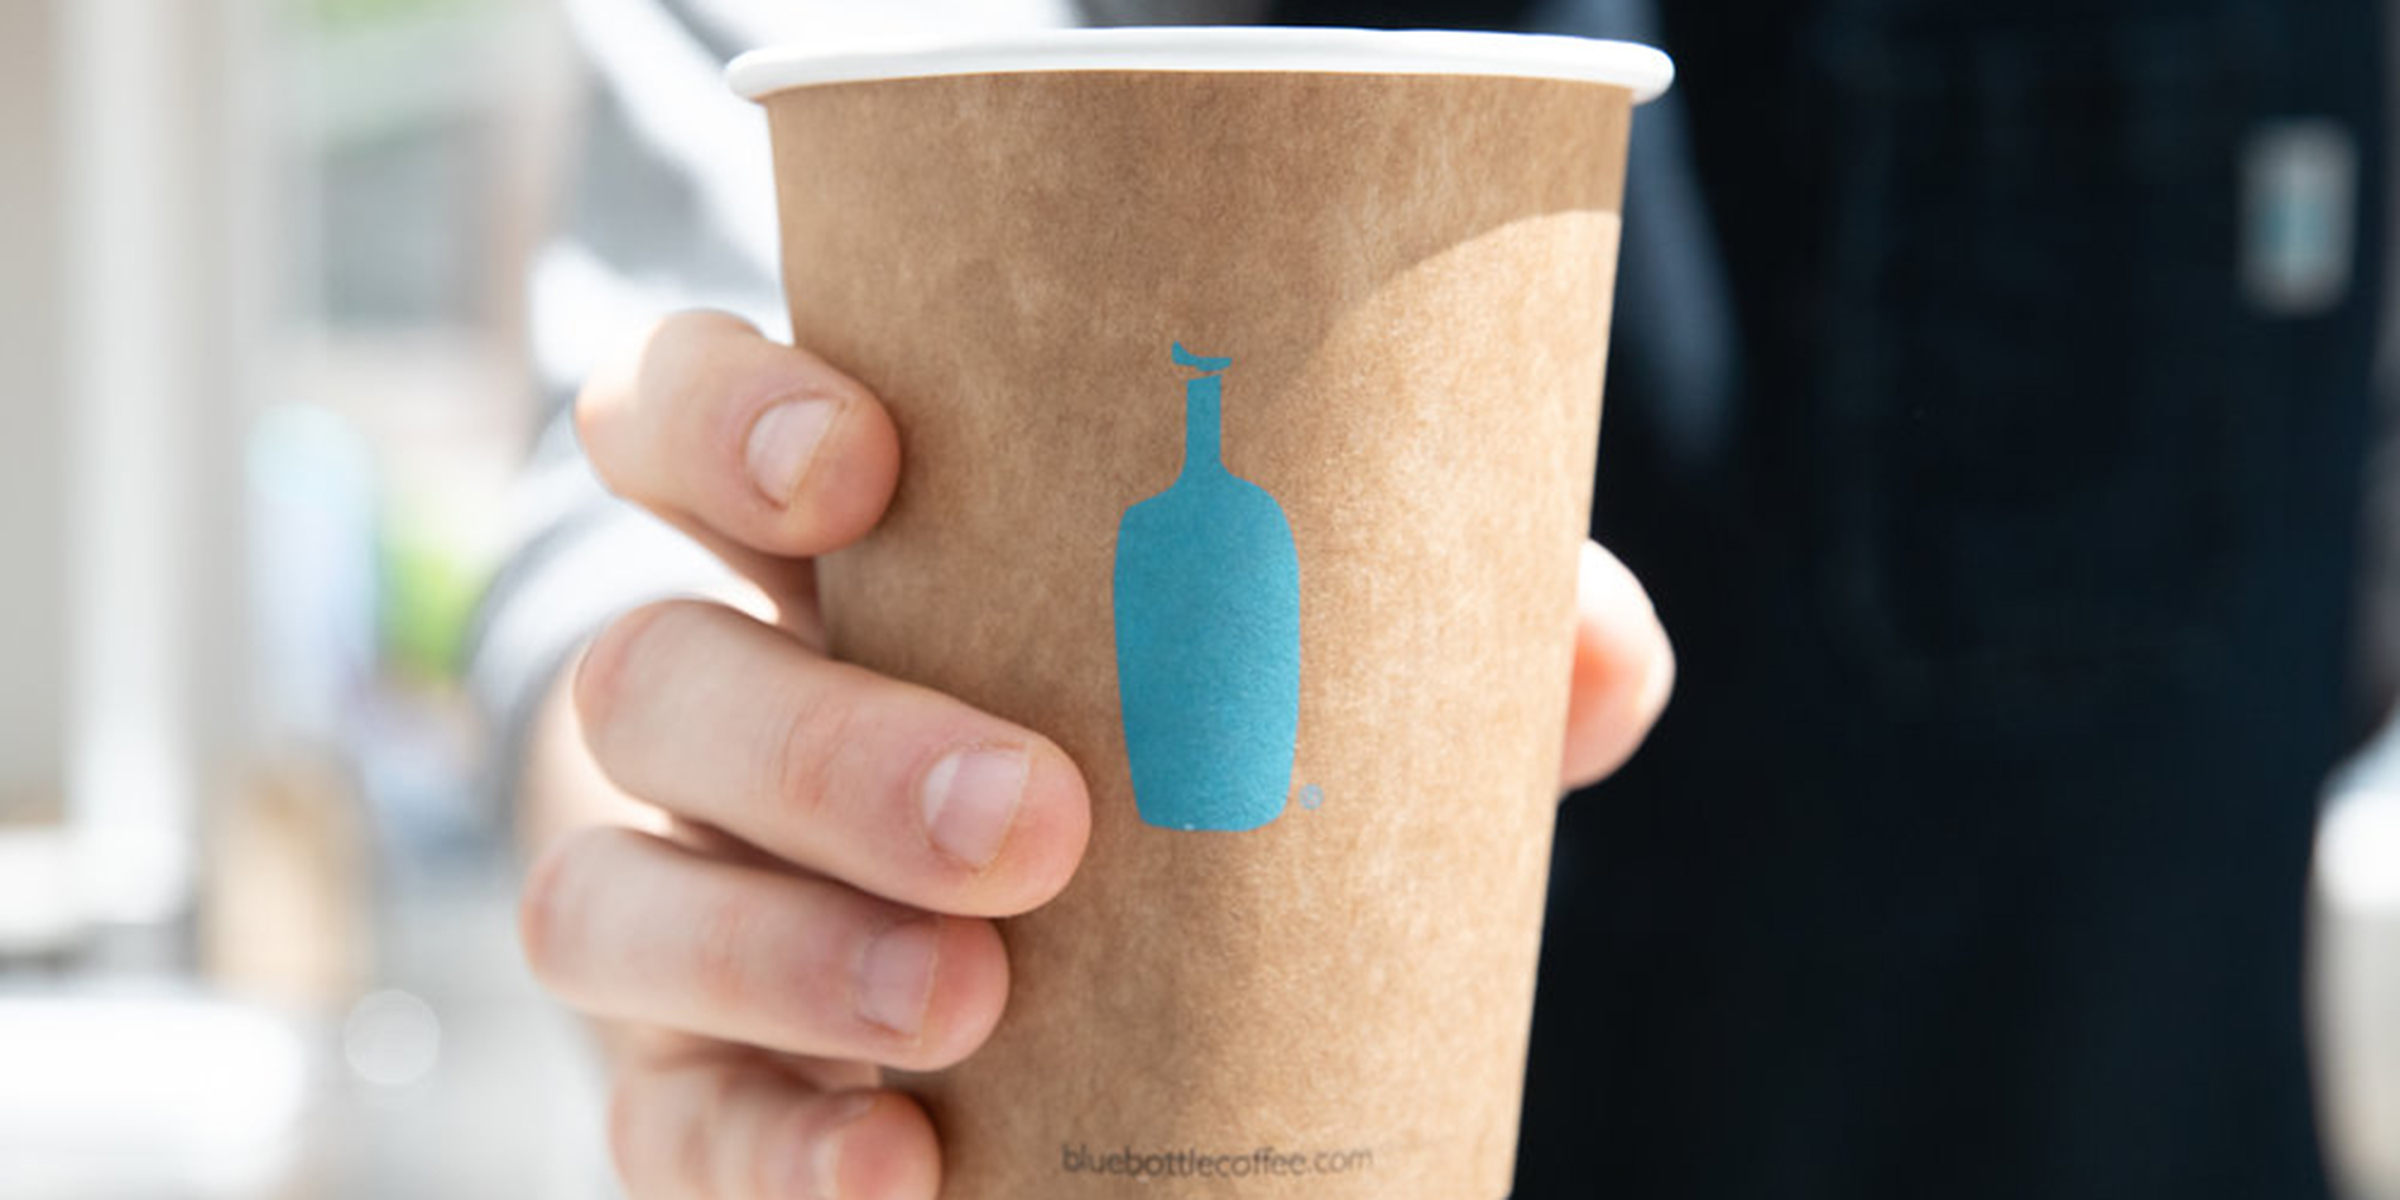 Coffee Chain Blue Bottle Aims To Eliminate Paper And Plastic Cups